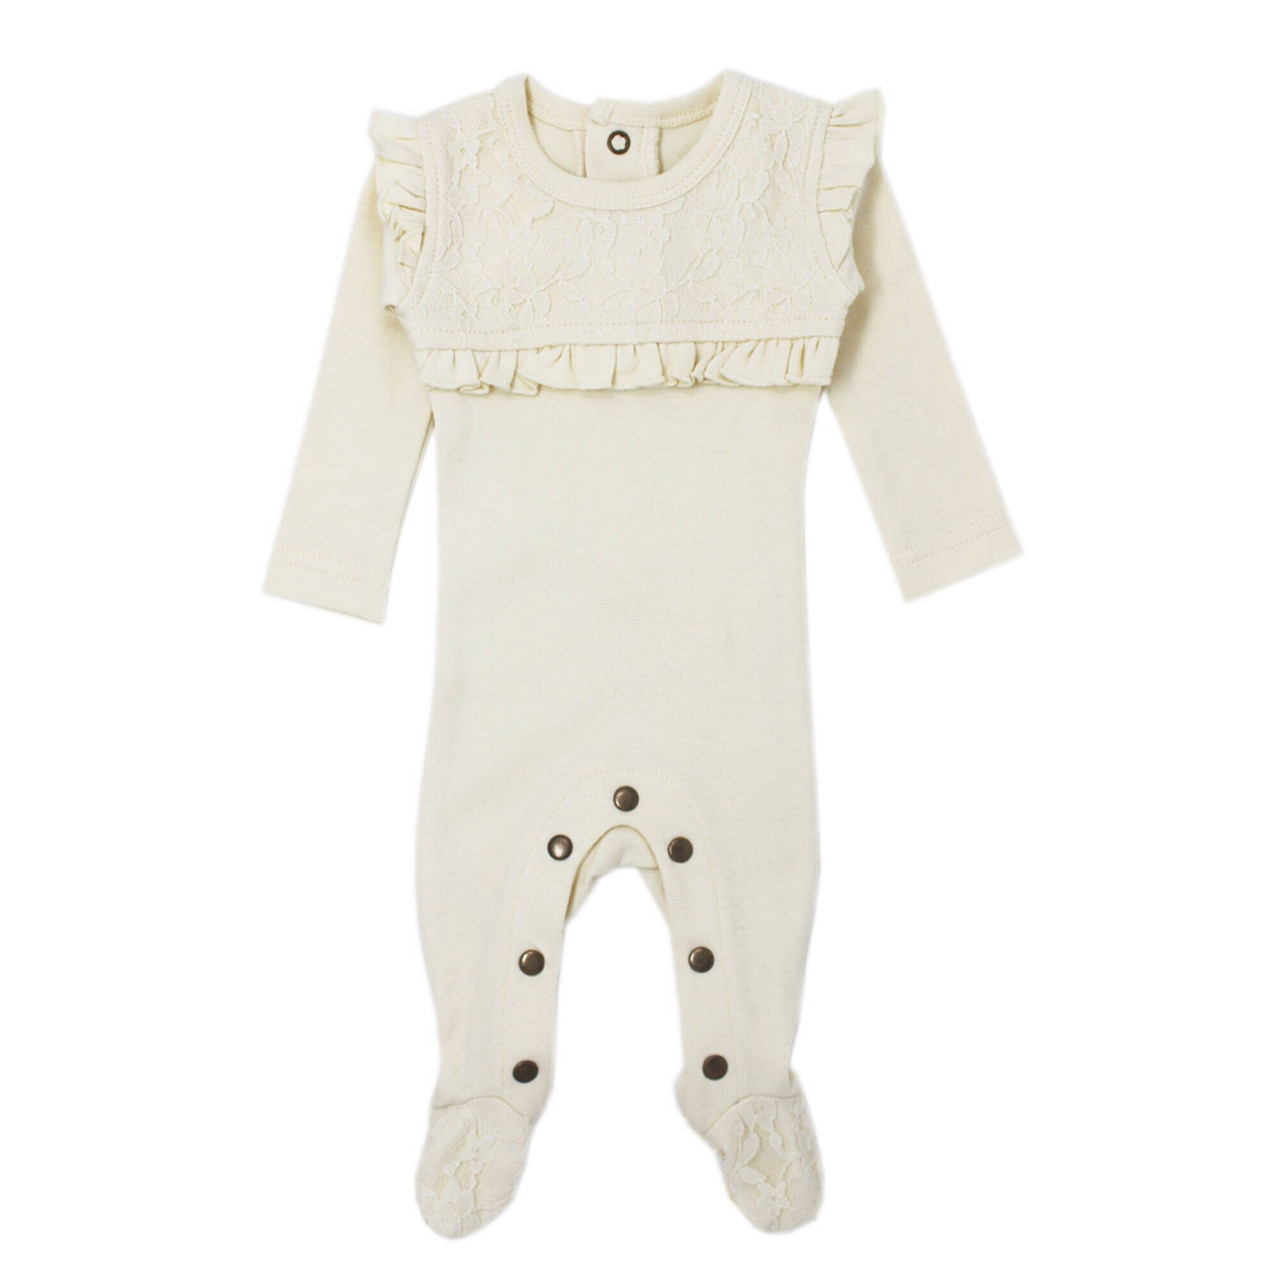 Organic Vintage Overall in Beige, Flat